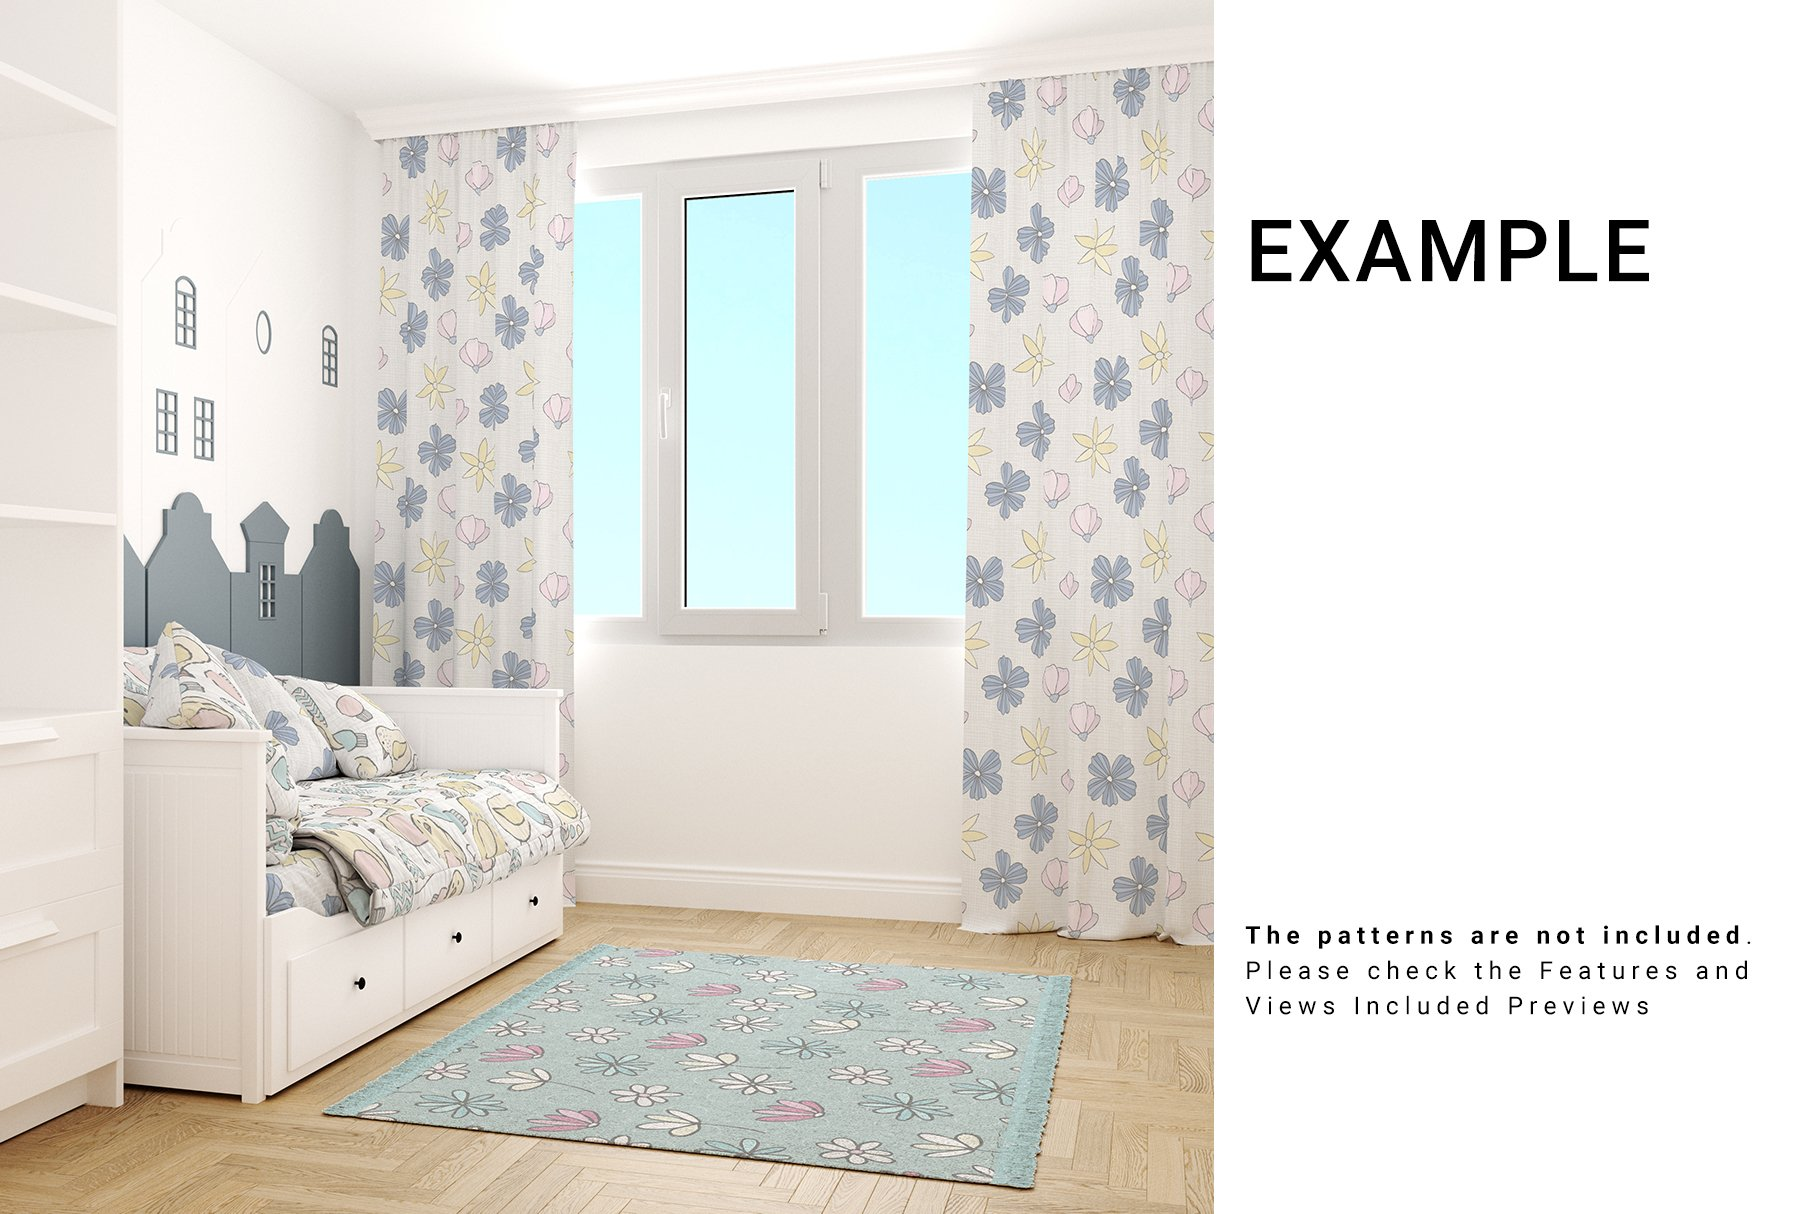 Toddlers Room Textile - Bedding, Curtains & Carpet Set example image 7